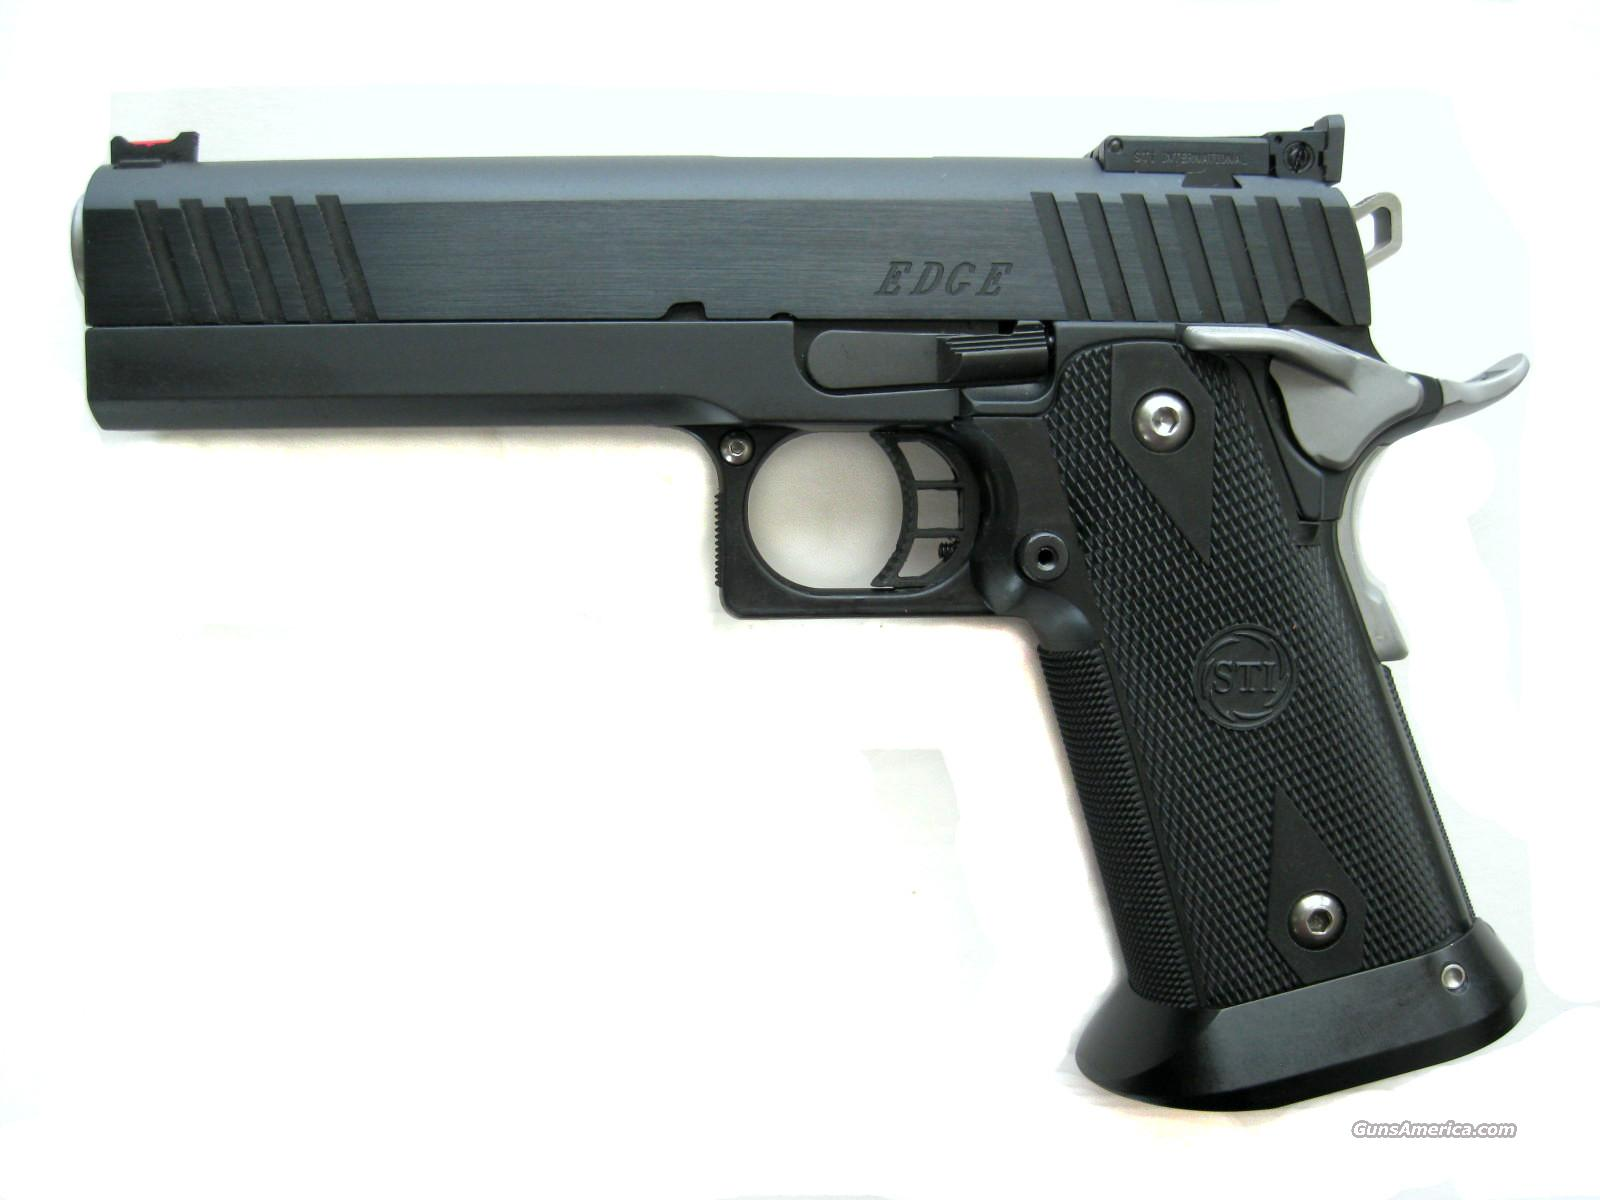 STI Edge 9mm DAWSON FO D/T Custom 2011 *NEW*  Guns > Pistols > STI Pistols